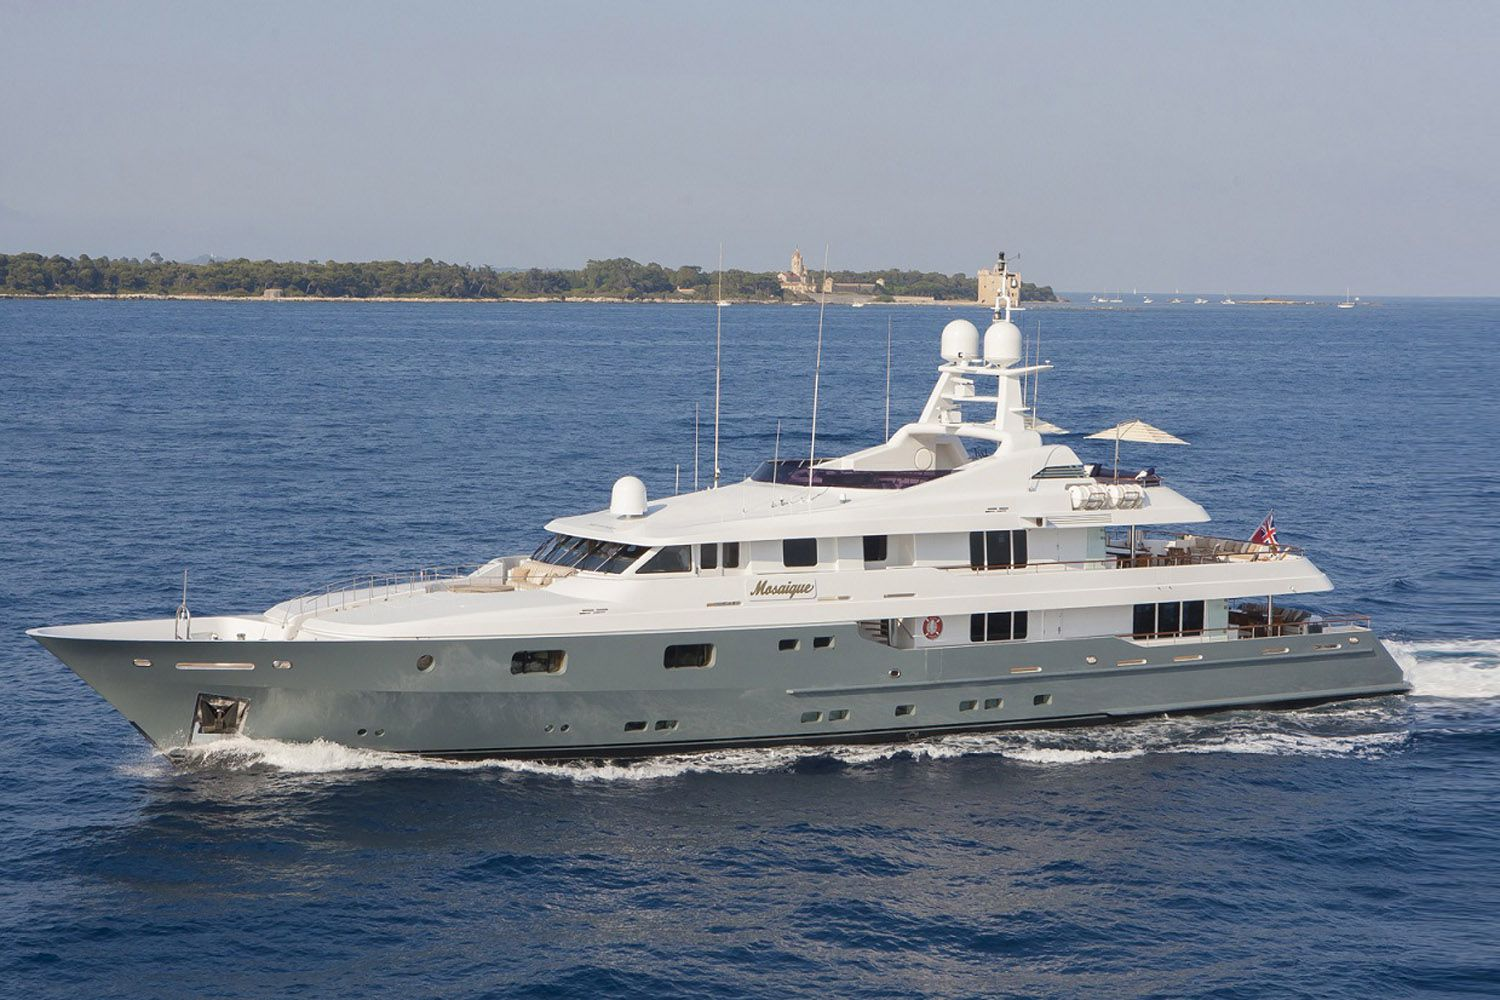 Mosaique superyacht available for charter in the West Med